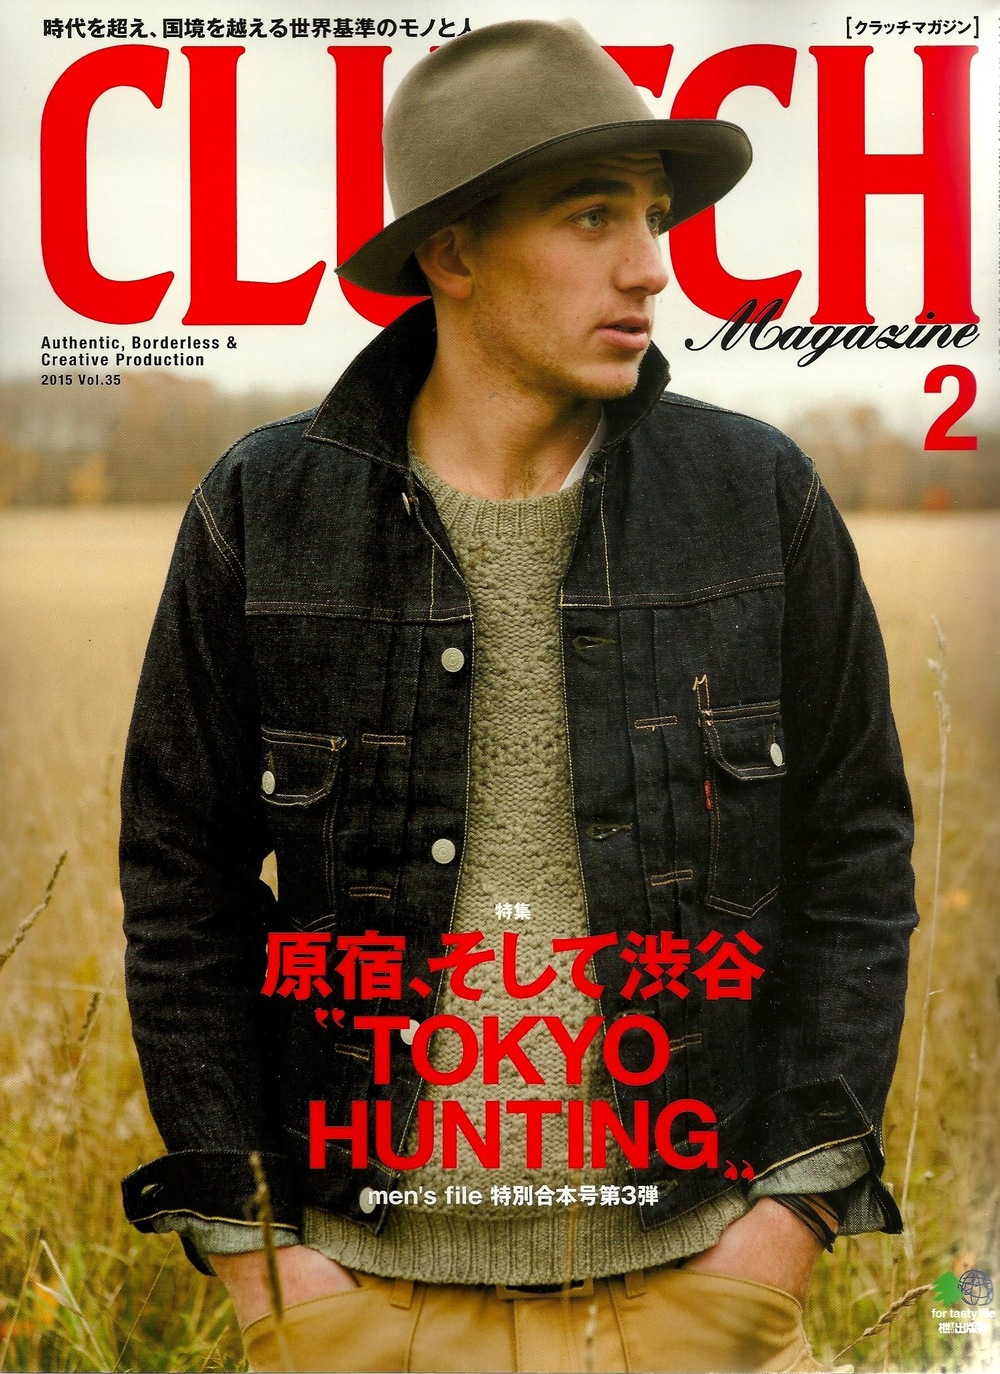 Clutch Magazine Old Joe Opening-2.jpg